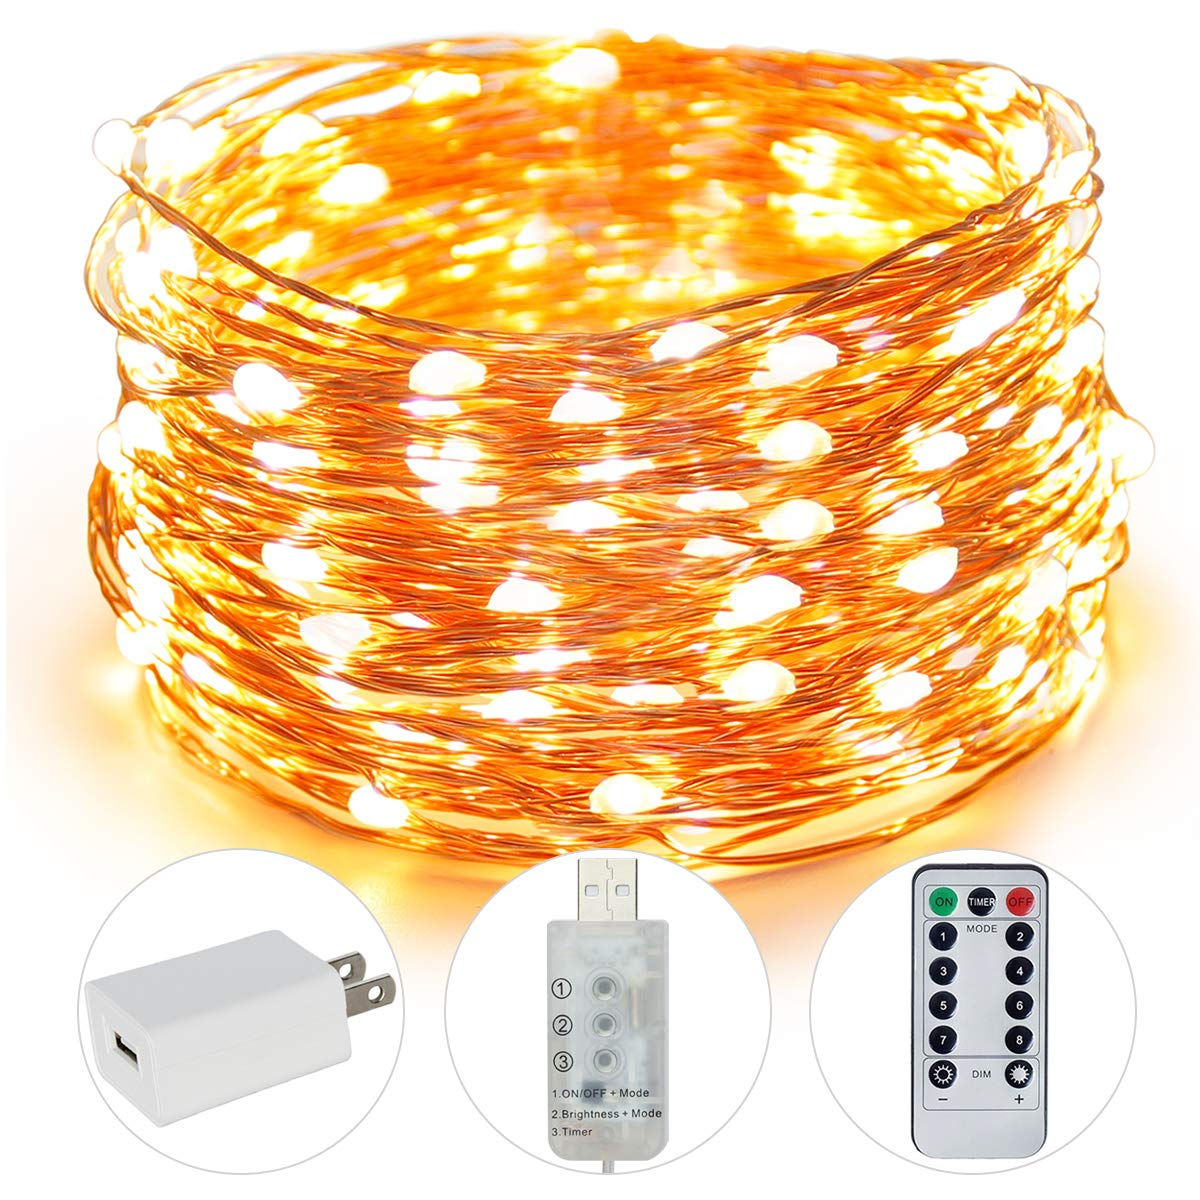 Fairy Lights, 100 LED 33FT USB Indoor String Lights with Remote Timer Adapter, String LED Lights for Christmas, Party, Holidays, Garden, Wedding, Indoor, and Outdoor Decoration (Warm White)